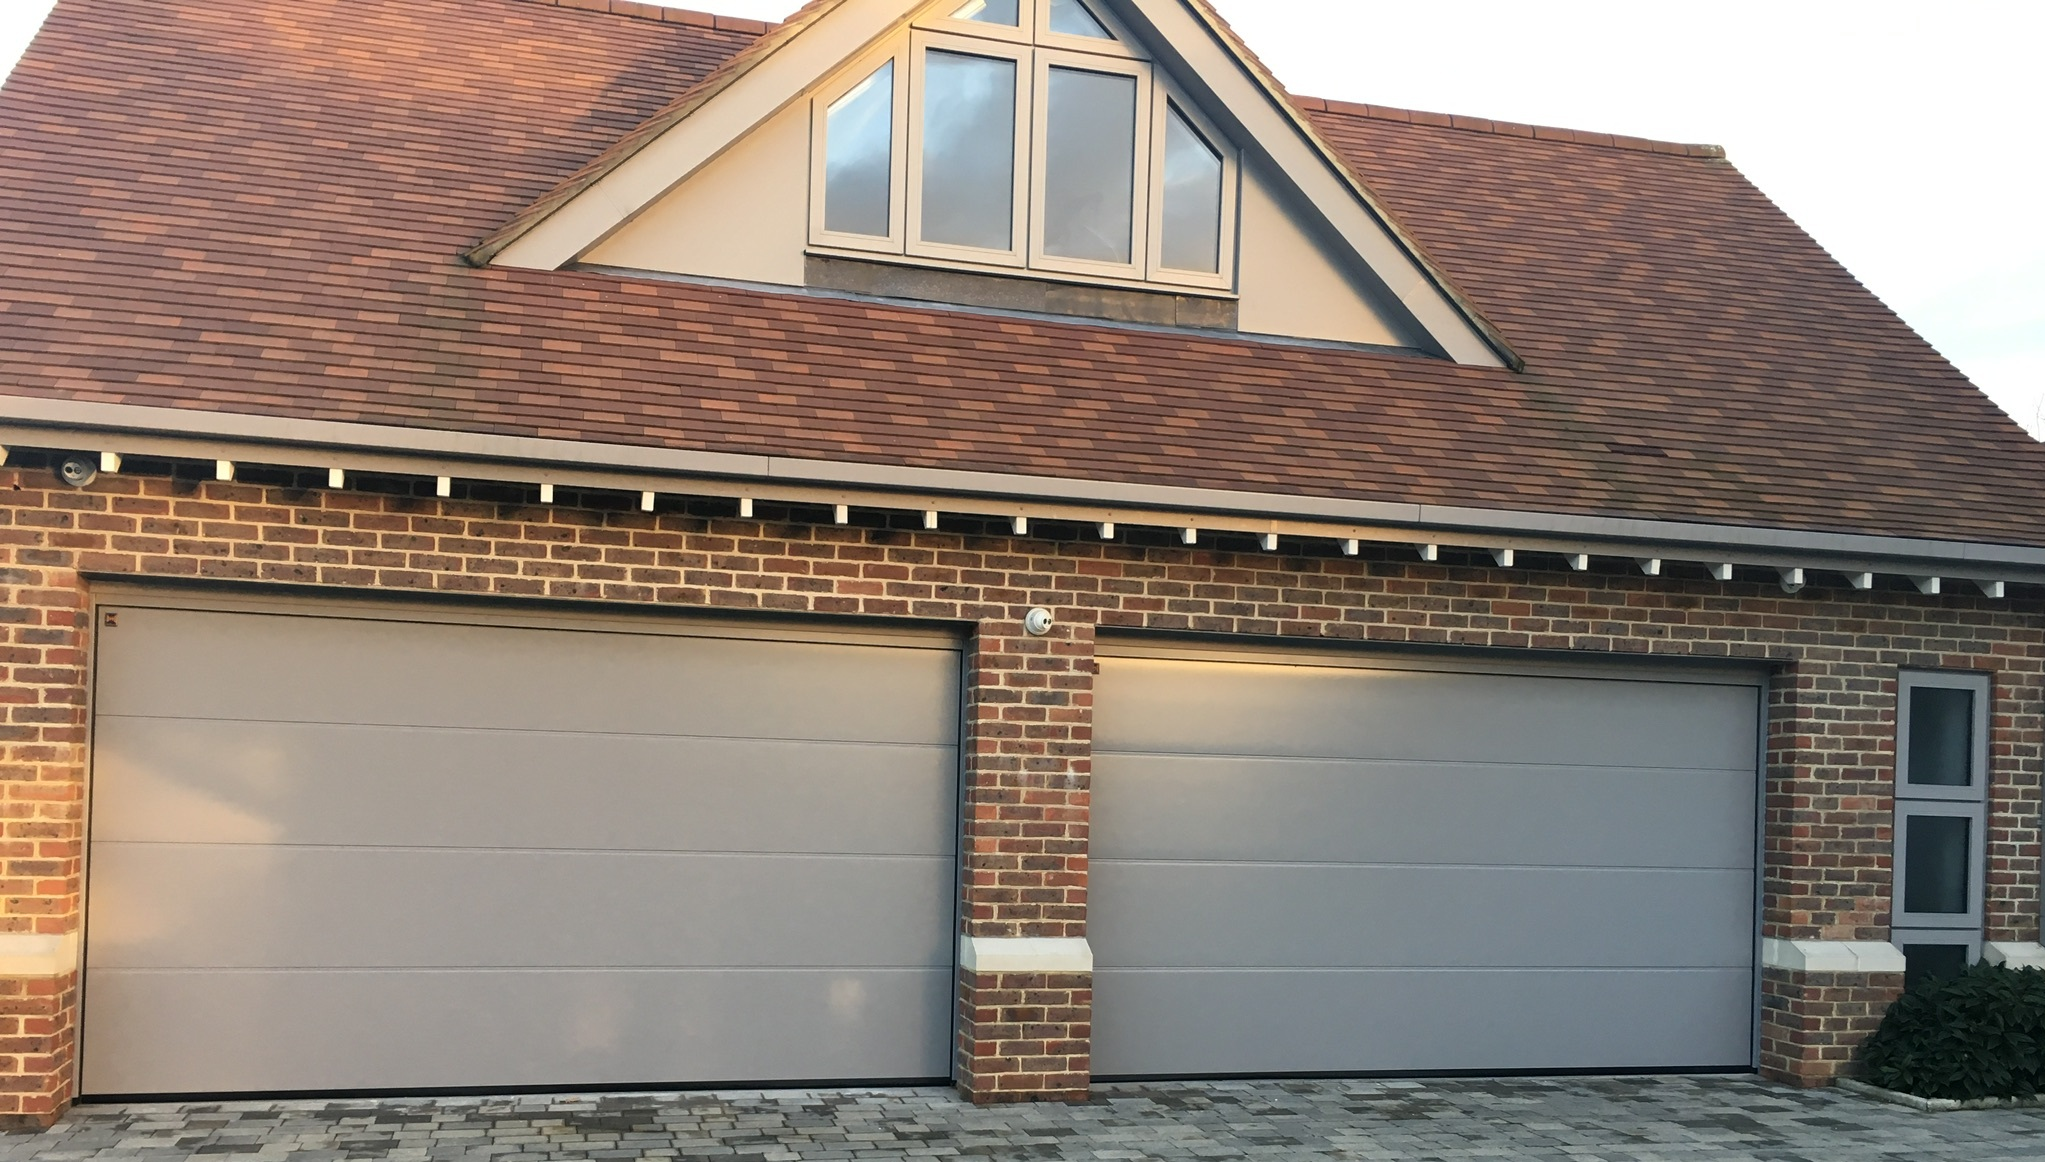 Colour matched garage doors